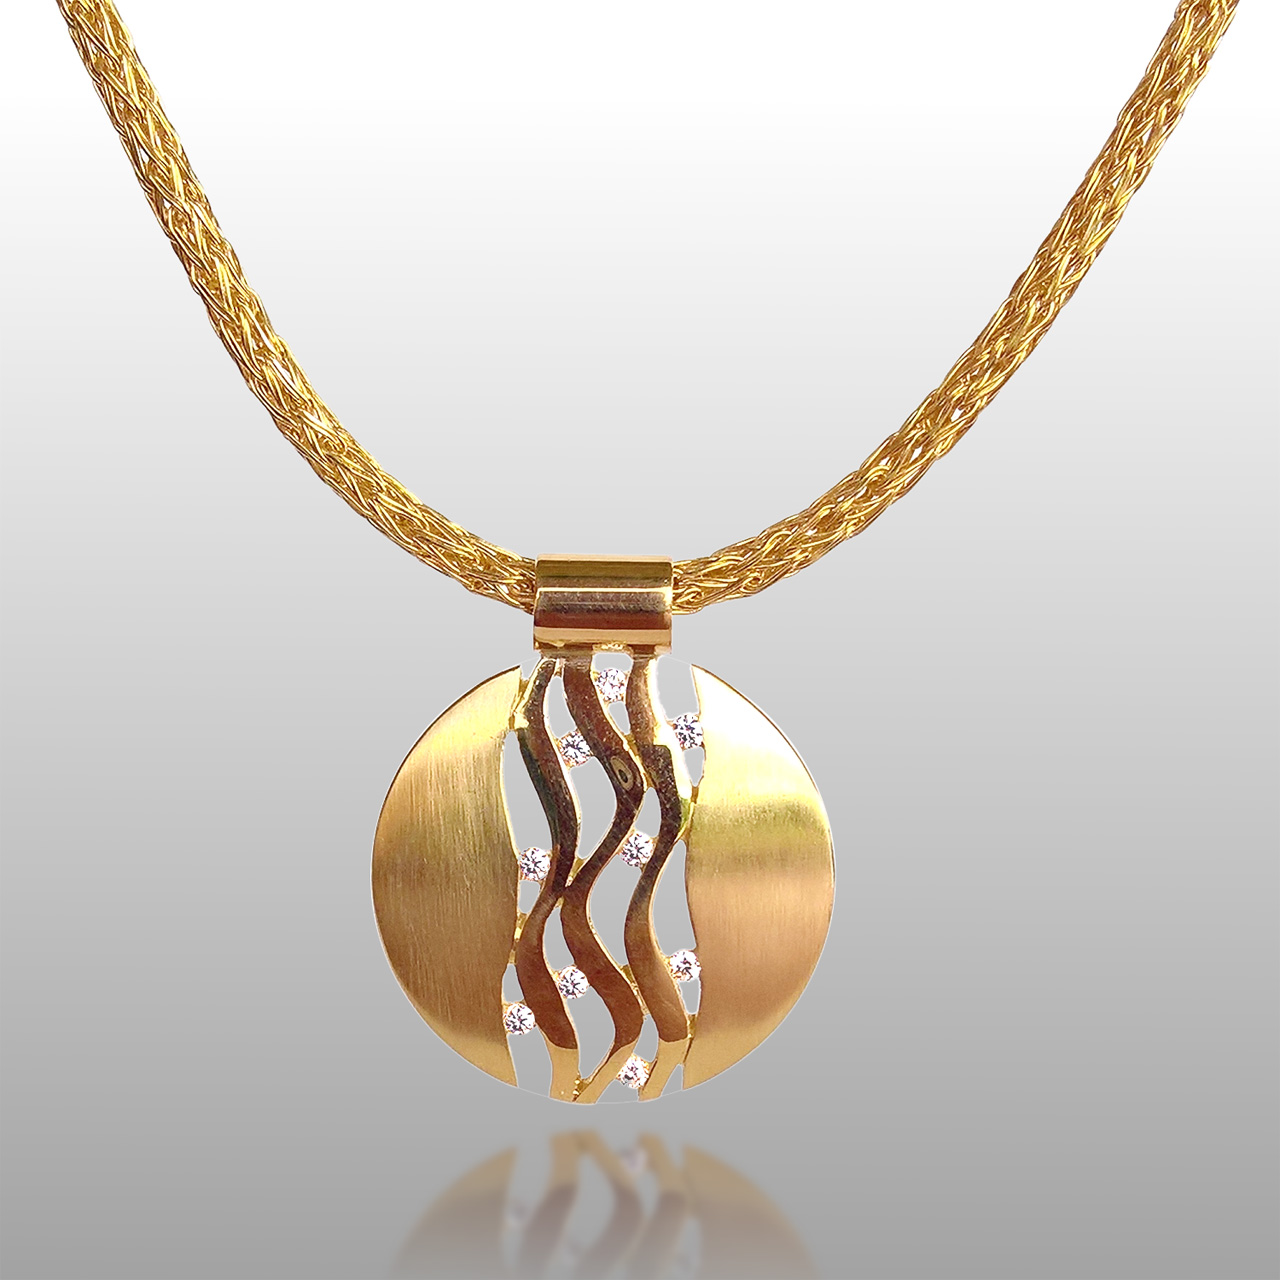 18k yellow gold necklace. Round shape with lines in the center and diamonds